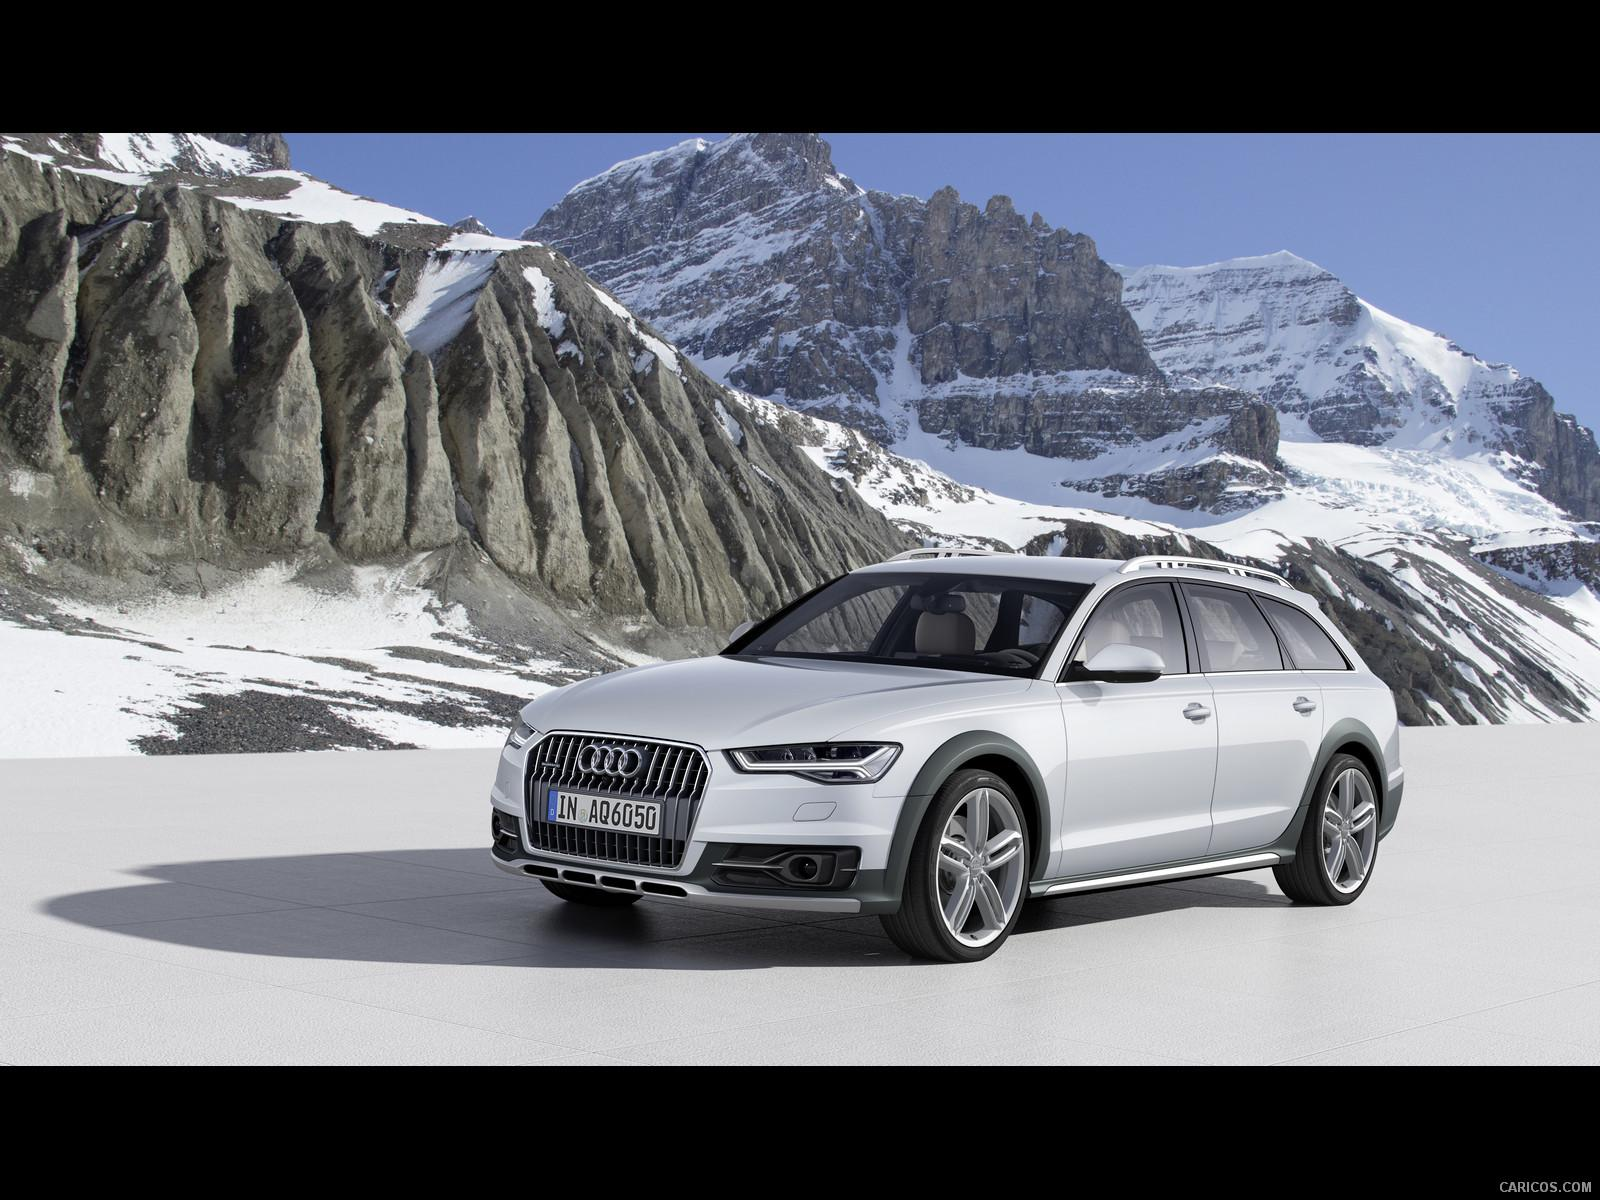 2015 Audi A6 allroad (Cortina White) - Front | Wallpaper #1 | 1600x1200